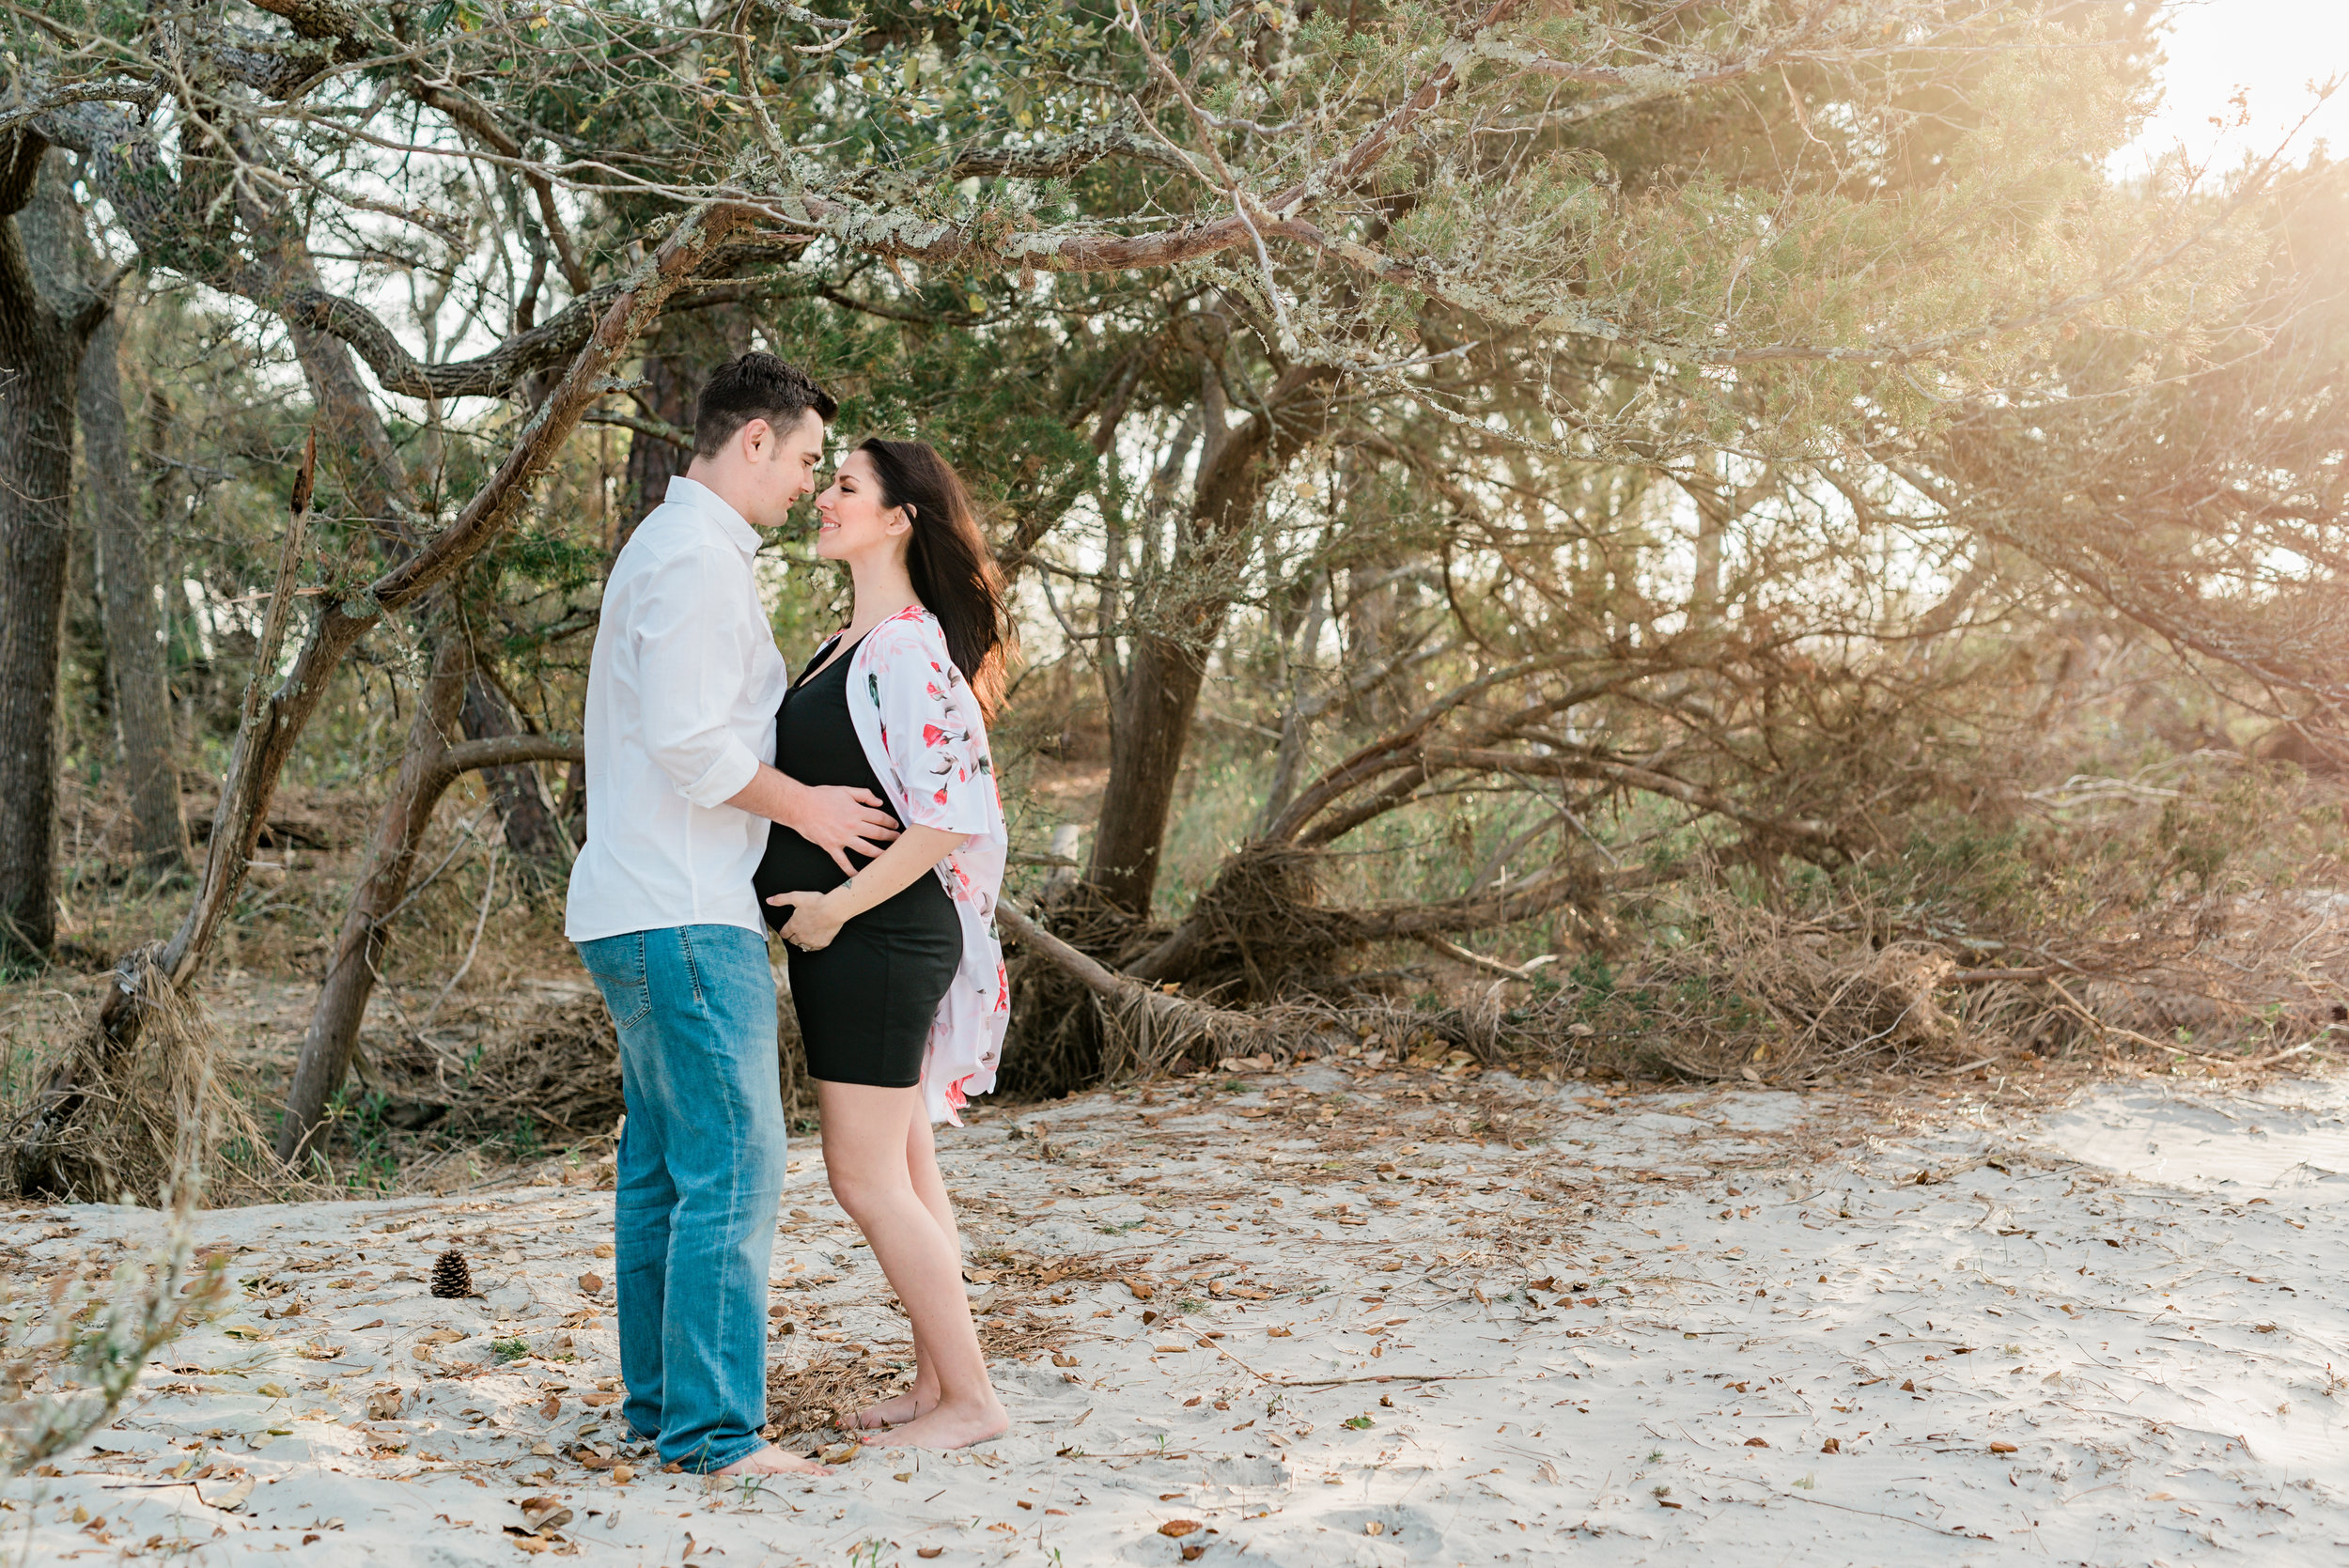 Folly-Beach-Maternity-Photographer-Following-Seas-Photography-1574 copy.jpg